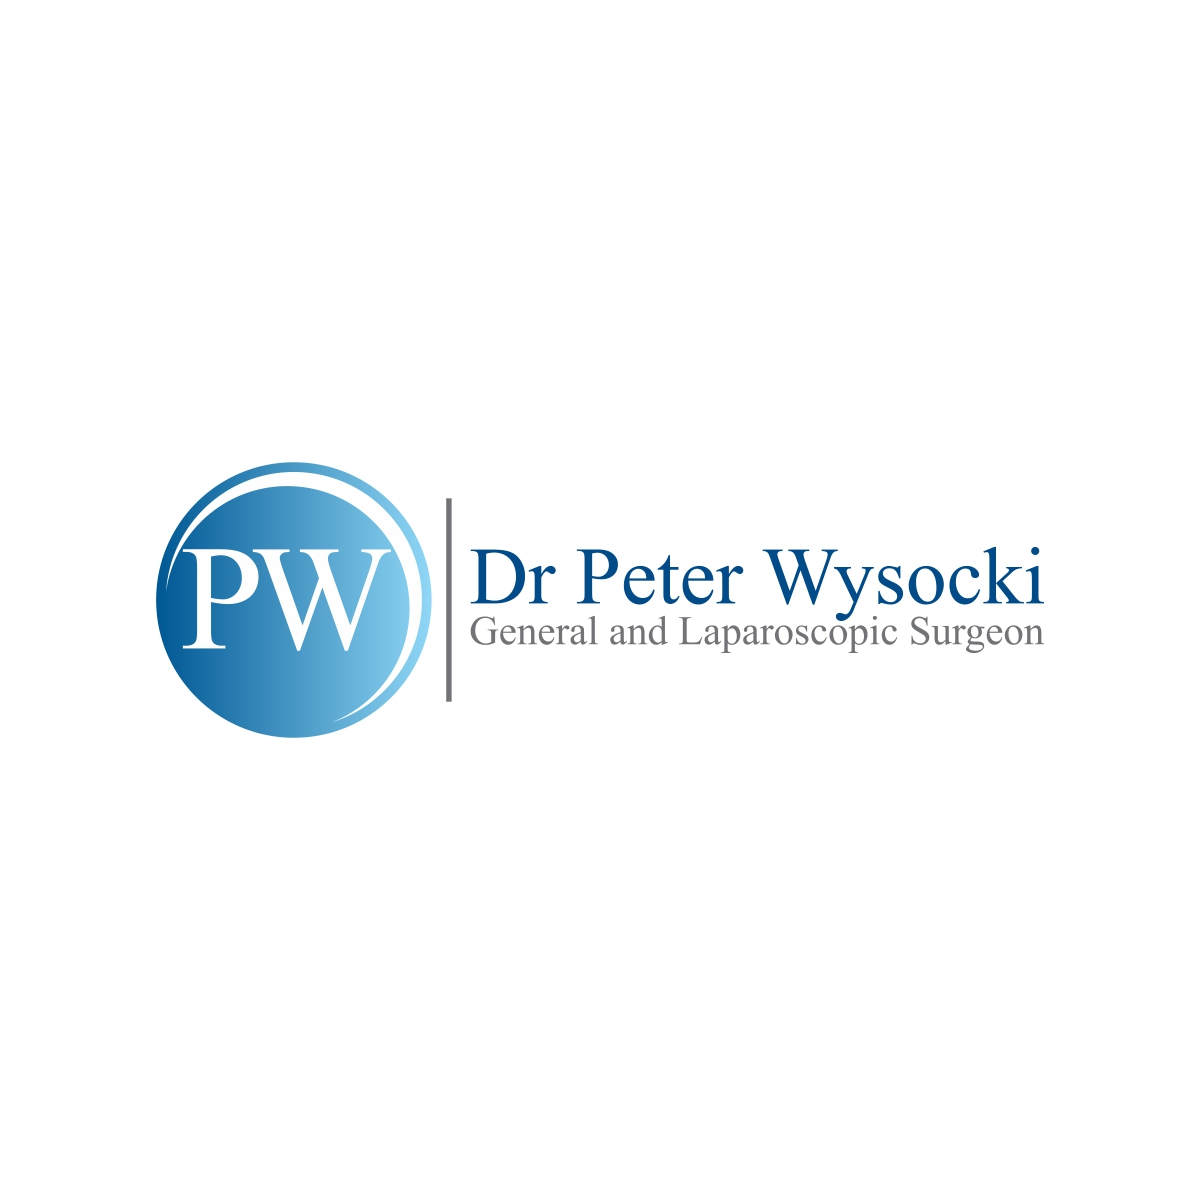 Modern Professional Health Care Logo Design For Dr Peter Wysocki General And Laparoscopic Surgeon By Papamnoguera Design 14574725